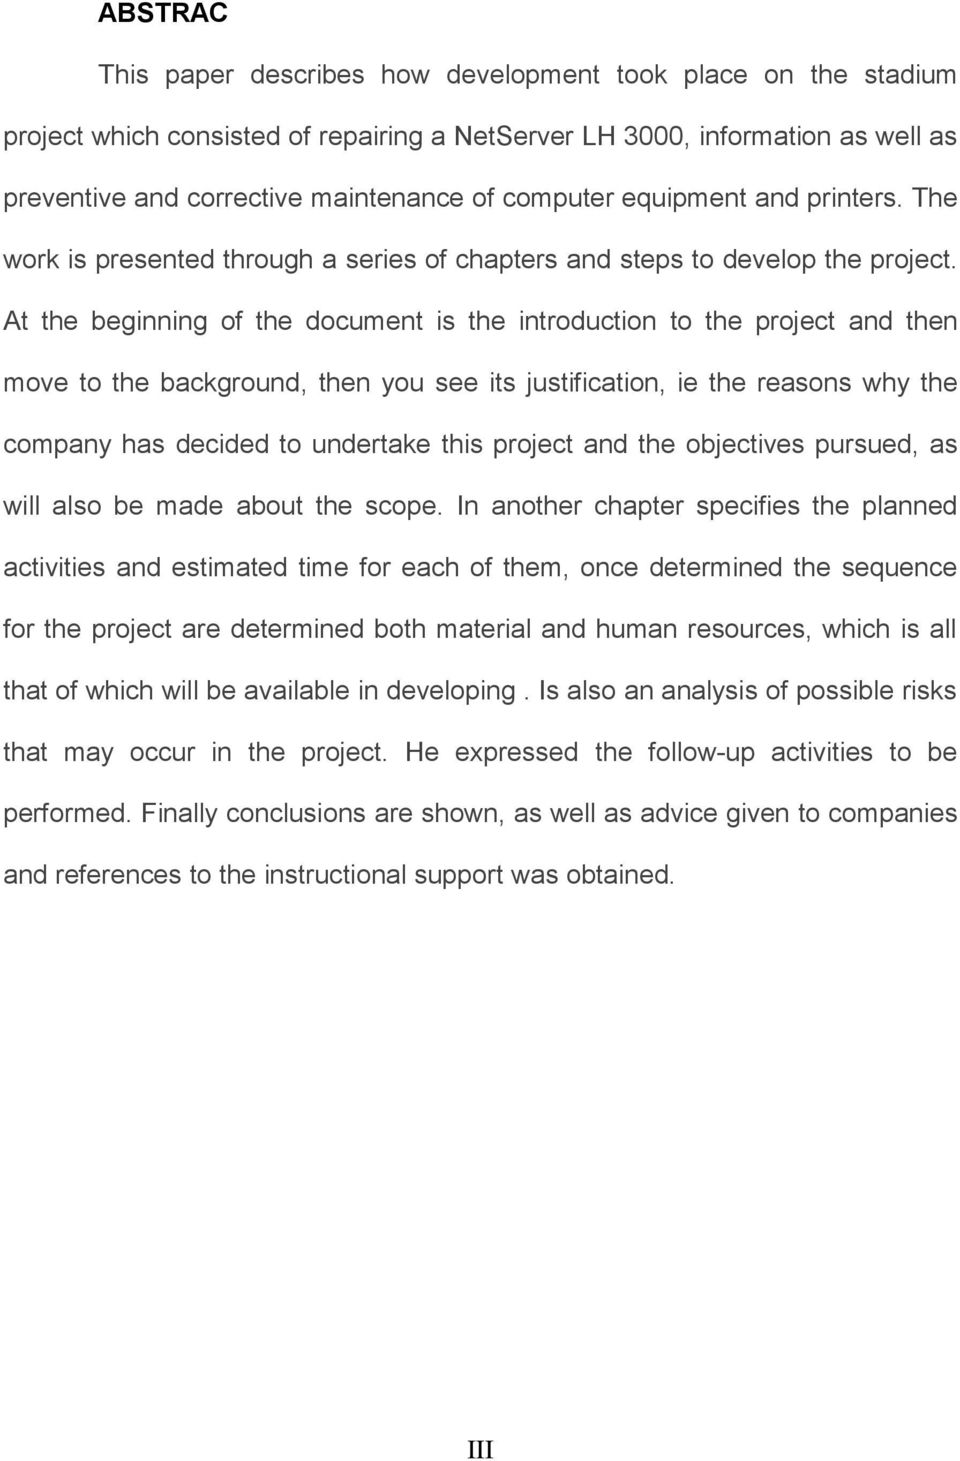 At the beginning of the document is the introduction to the project and then move to the background, then you see its justification, ie the reasons why the company has decided to undertake this